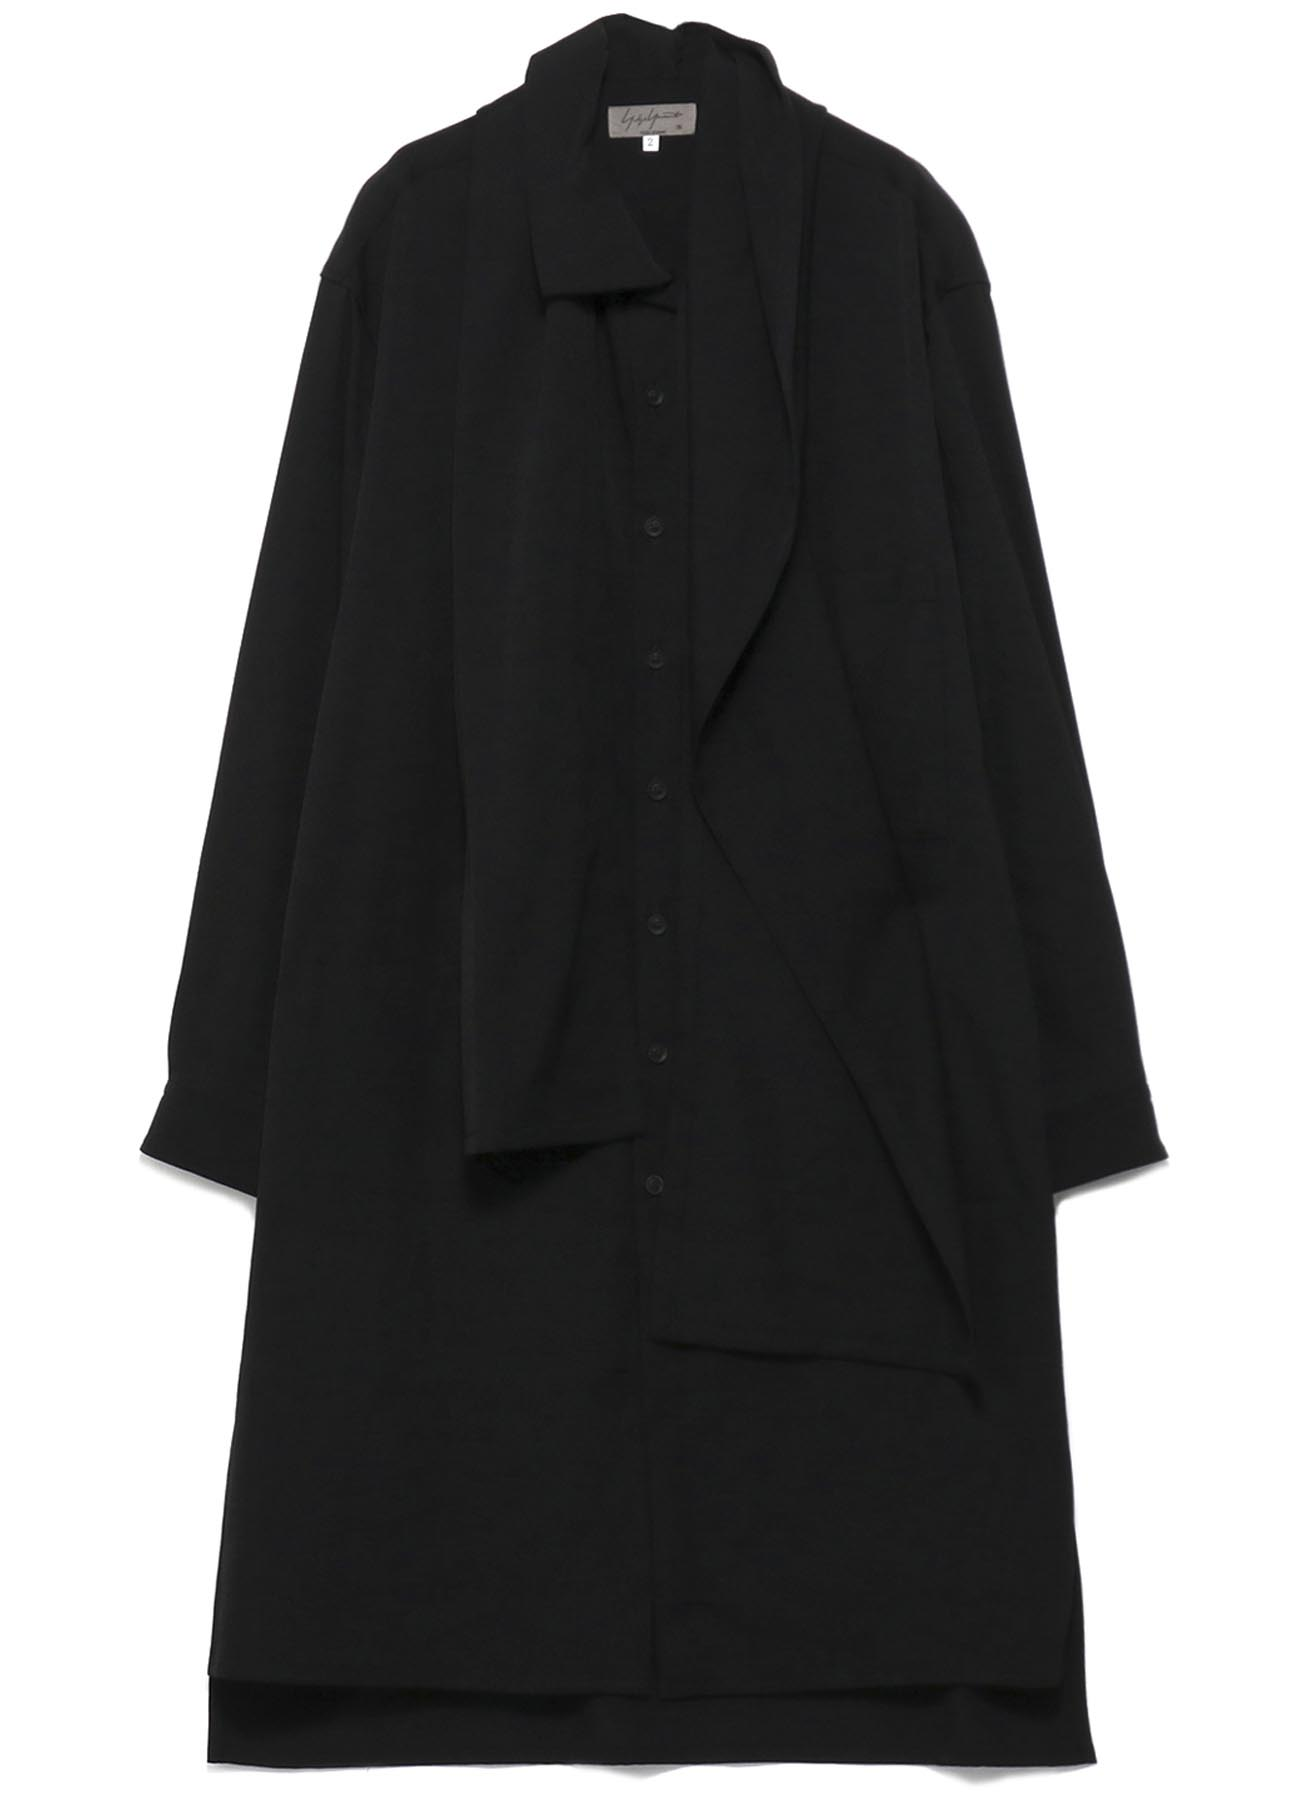 GABARDINE COLLAR STOLE INNER POCKET BLOUSE